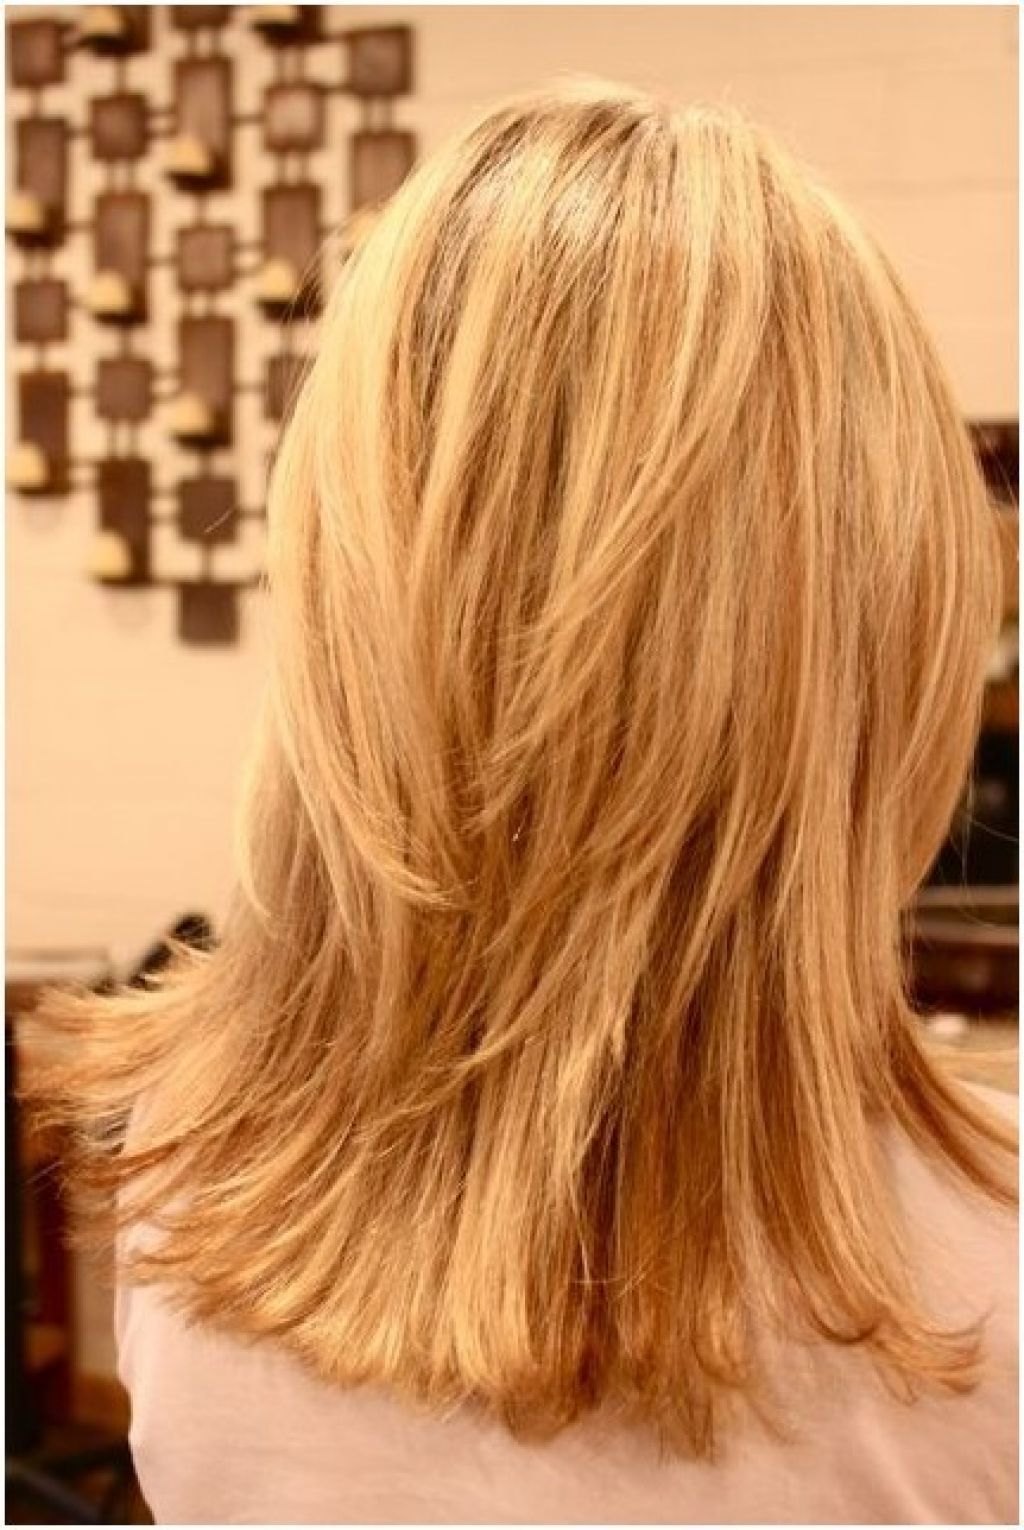 27 Awesome Medium Length Layered Haircut Back View Images Hair For